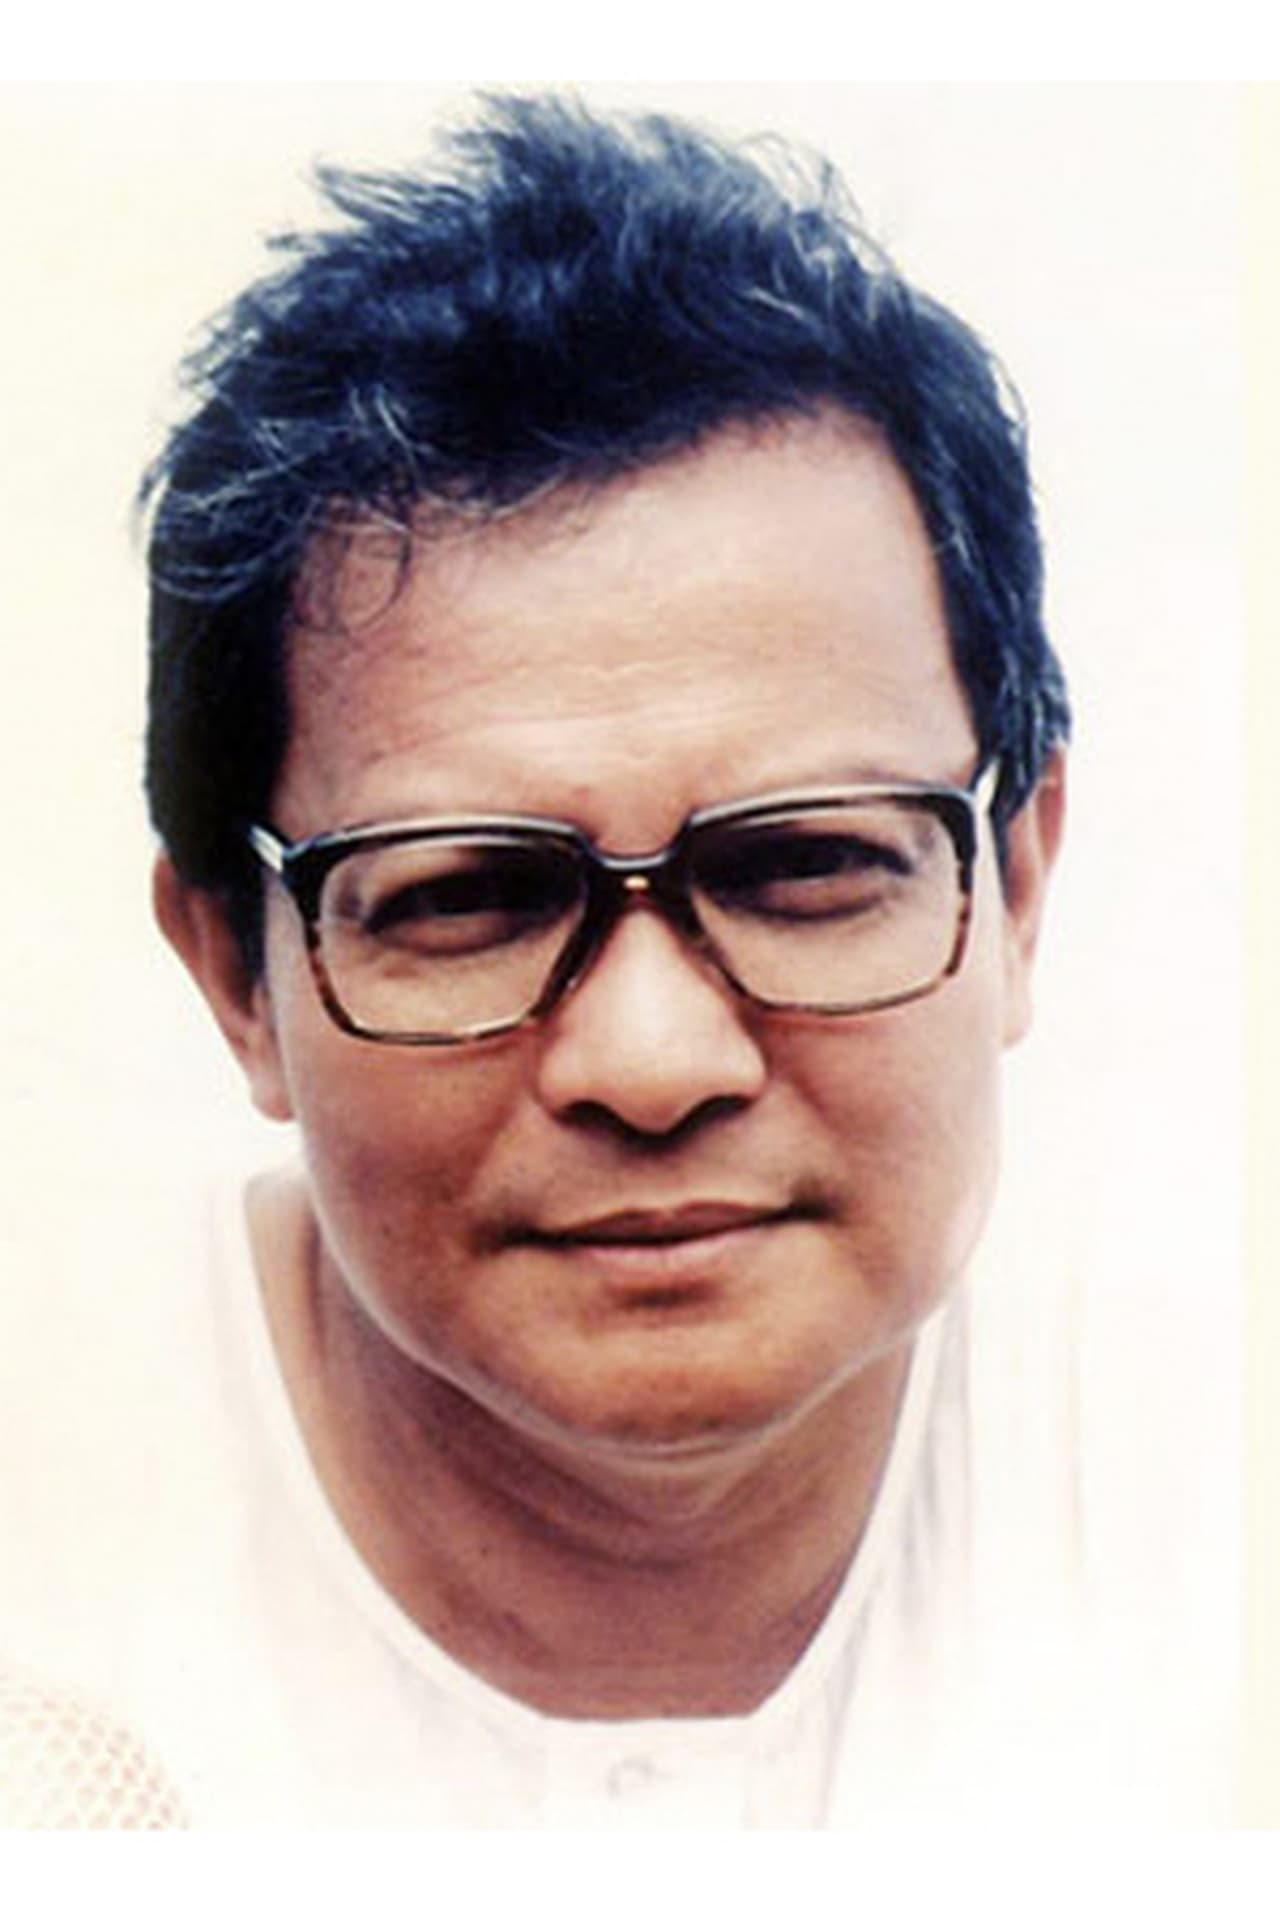 lino brock biography Catalino ortiz brocka (april 3, 1939 – may 22, 1991) was a filipino film director he is widely regarded as one of the most influential and significant filipino filmmakers in the history of philippine cinema.